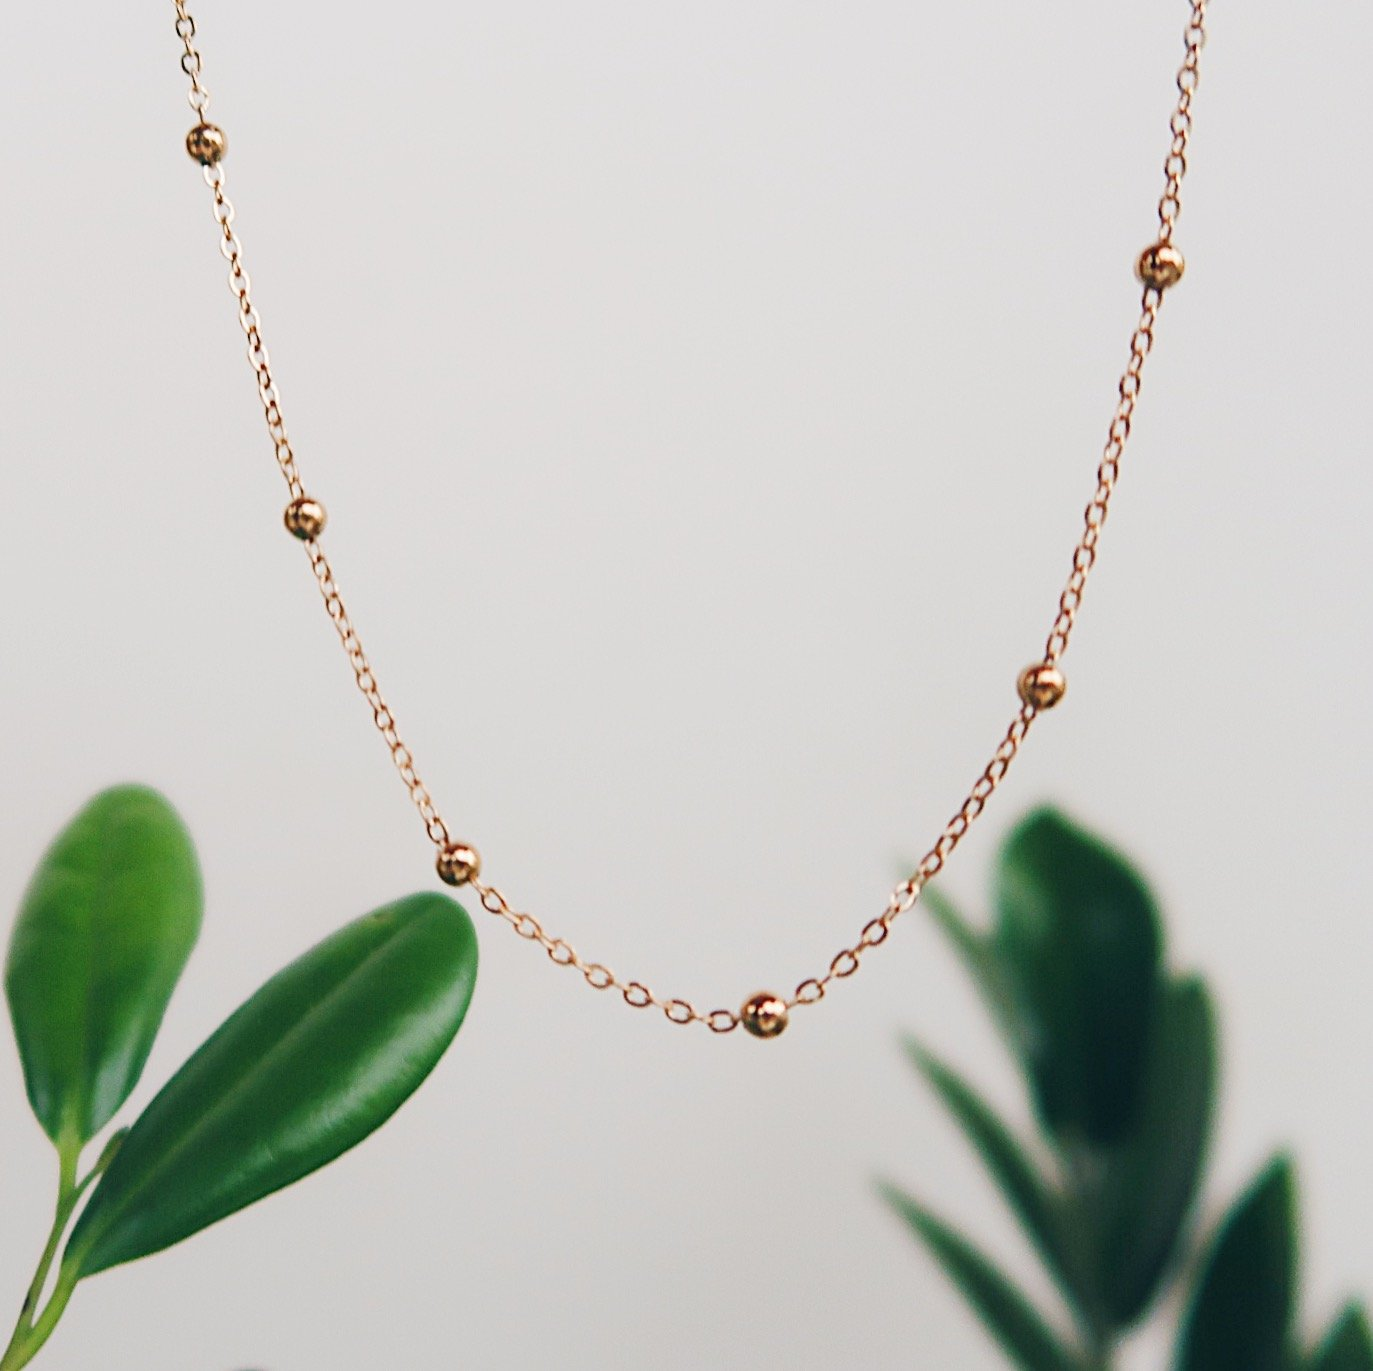 Beaded Chain Gold Filled Necklace